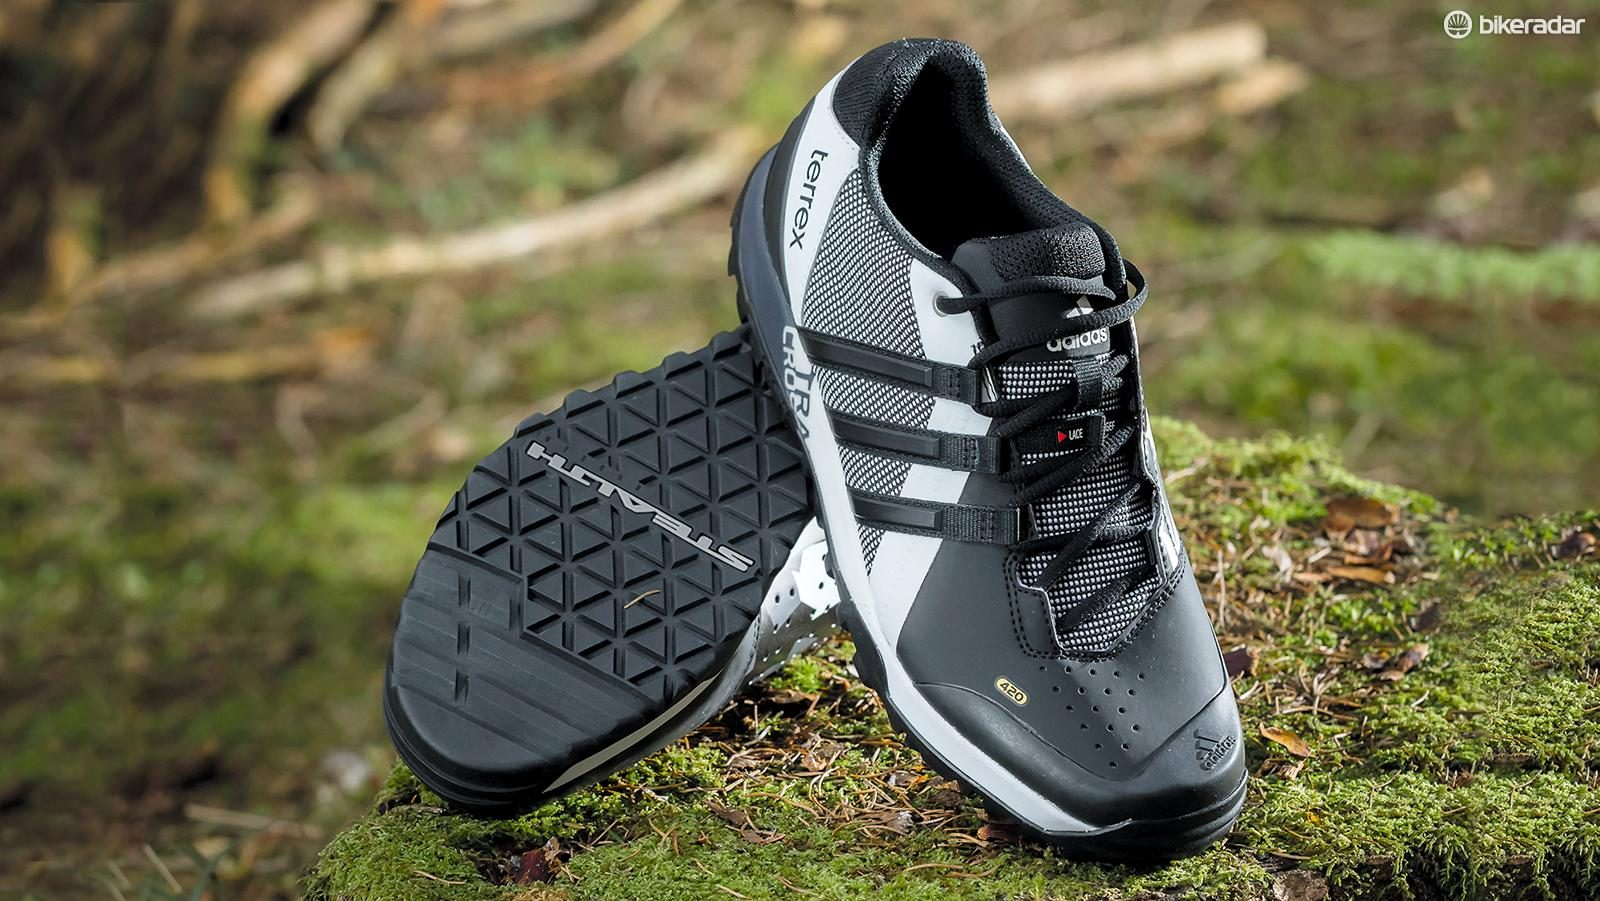 Adidas Terrex Trail Cross MTB shoes review - BikeRadar